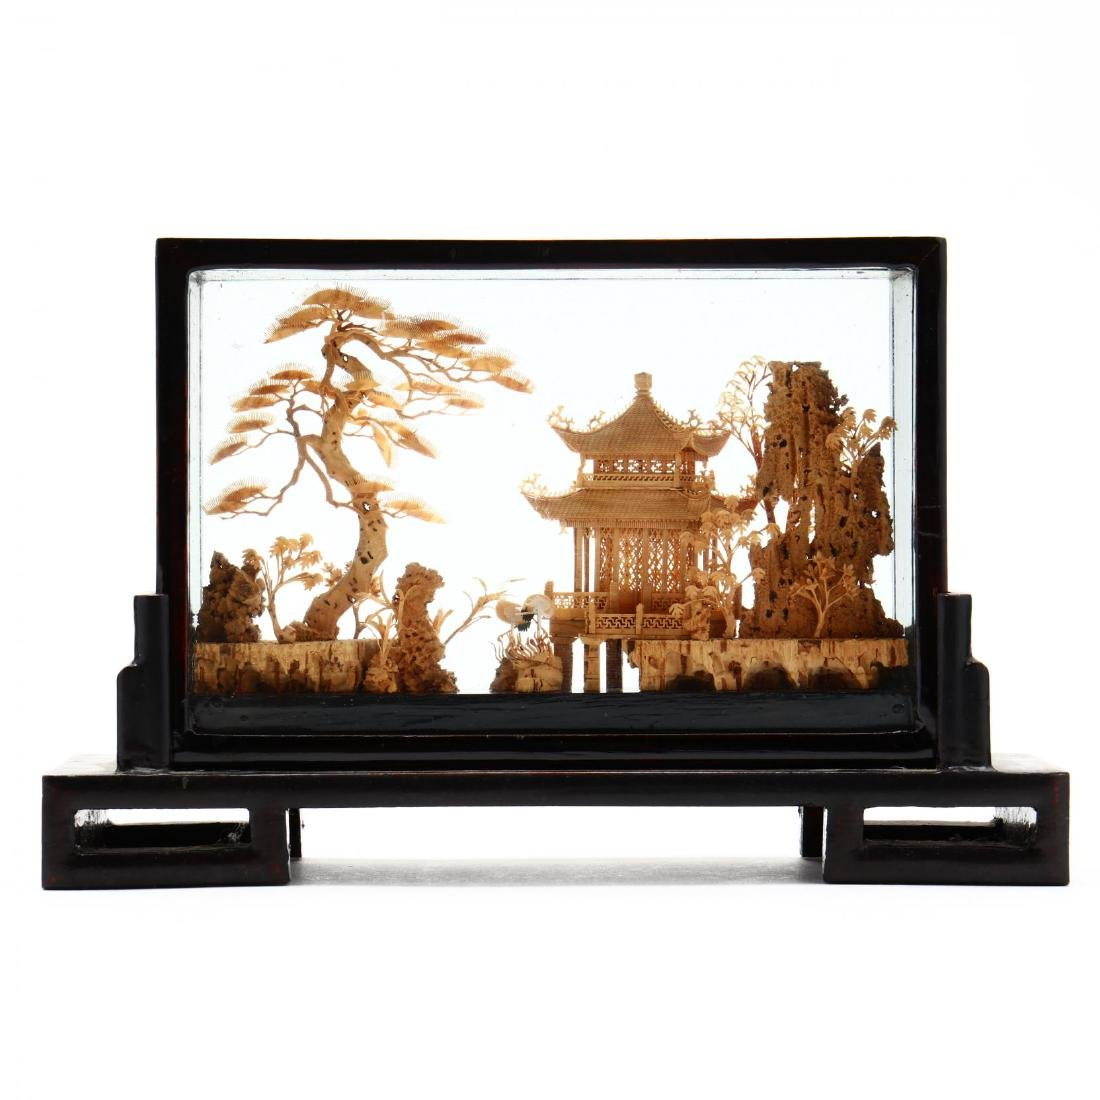 Chinese Decorative Accessory Grouping - 5